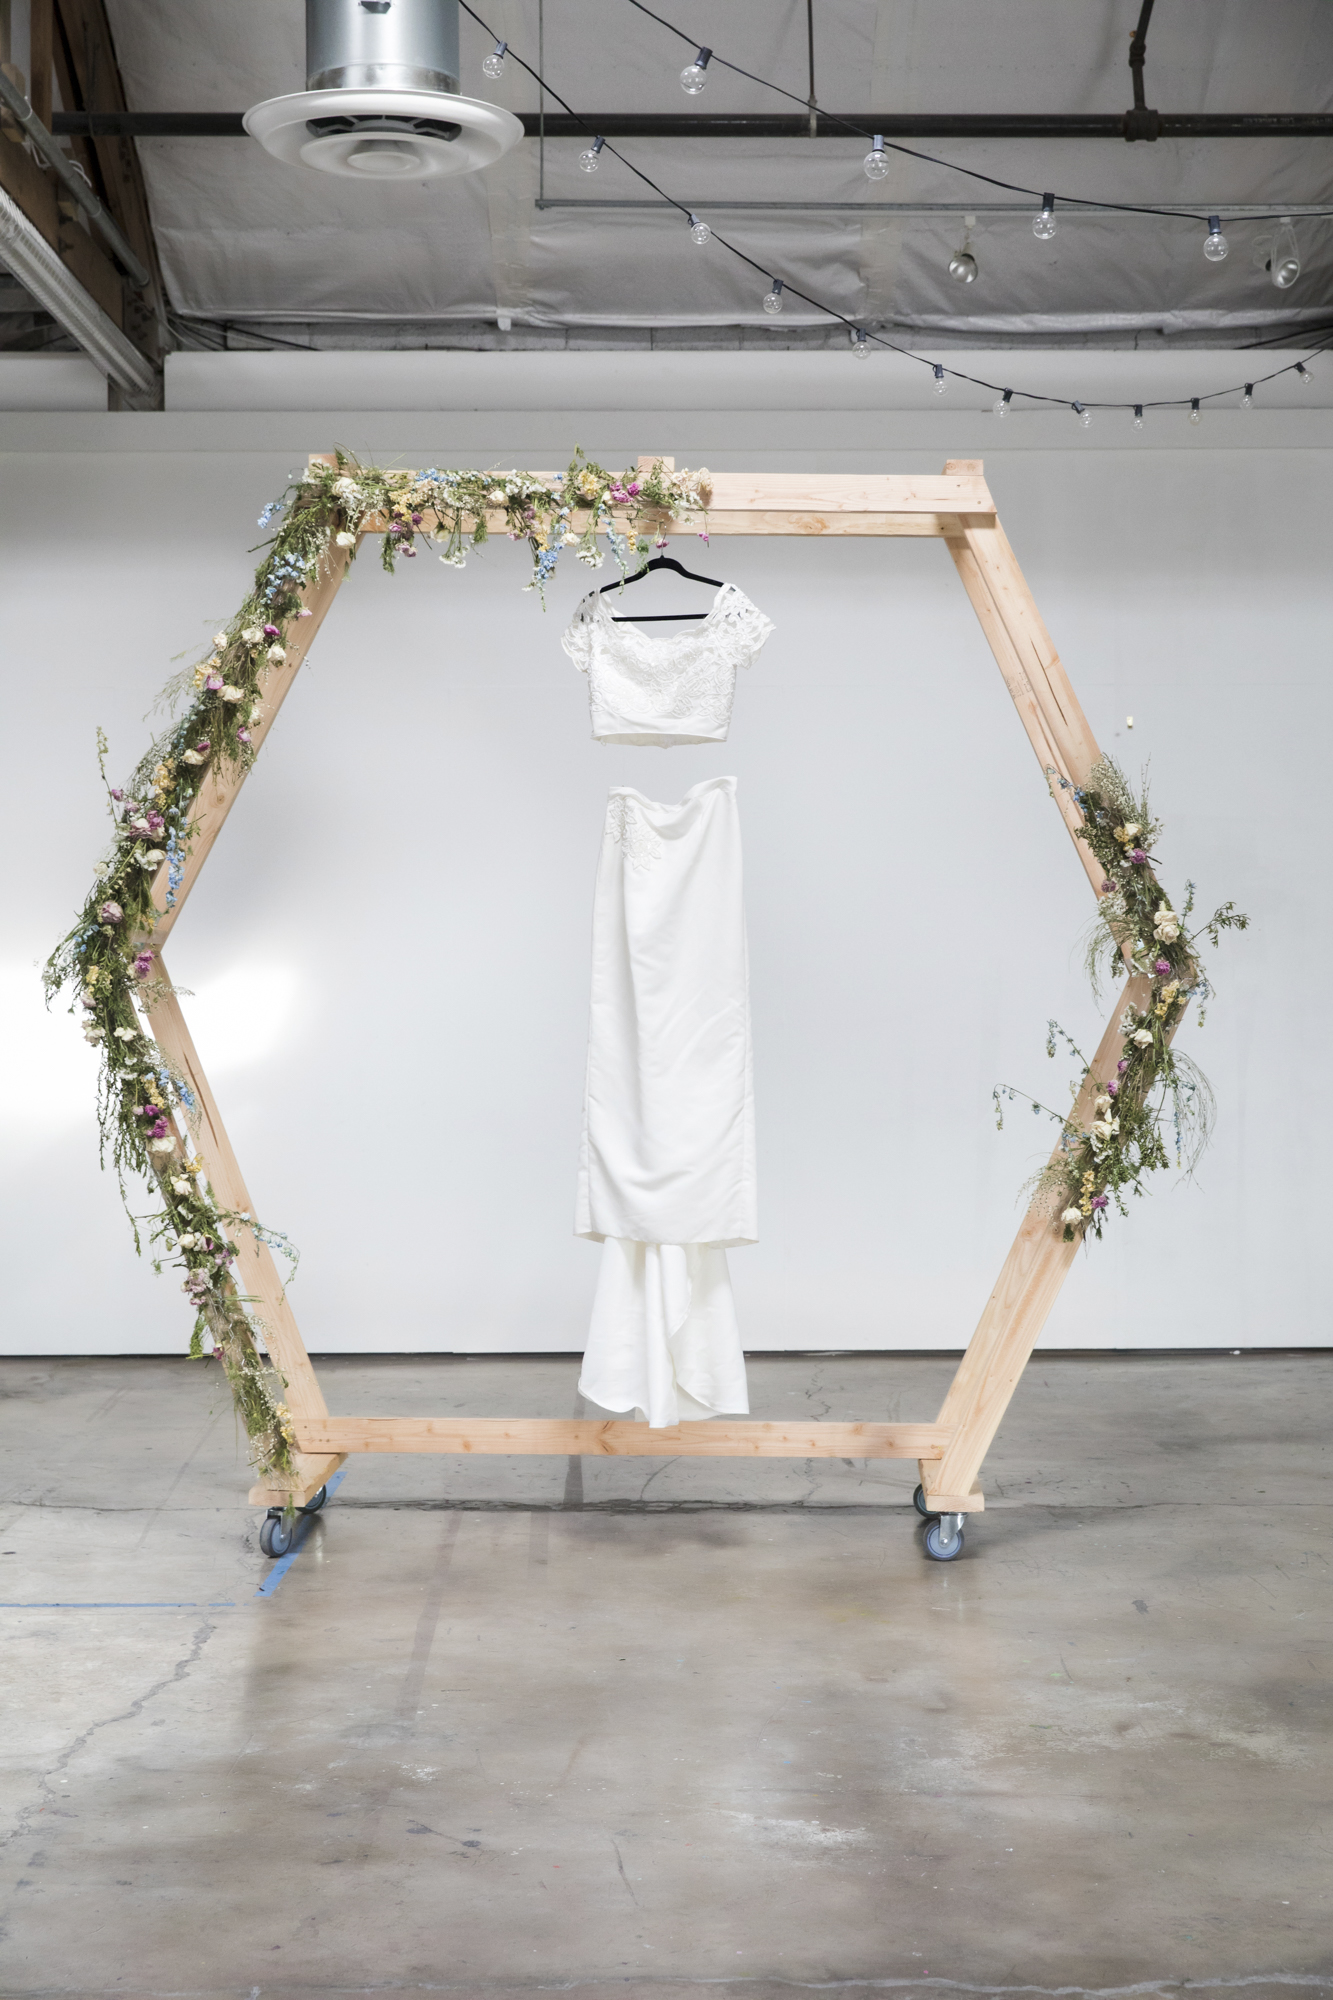 White eco-friendly wedding dress hanging on wooden stand